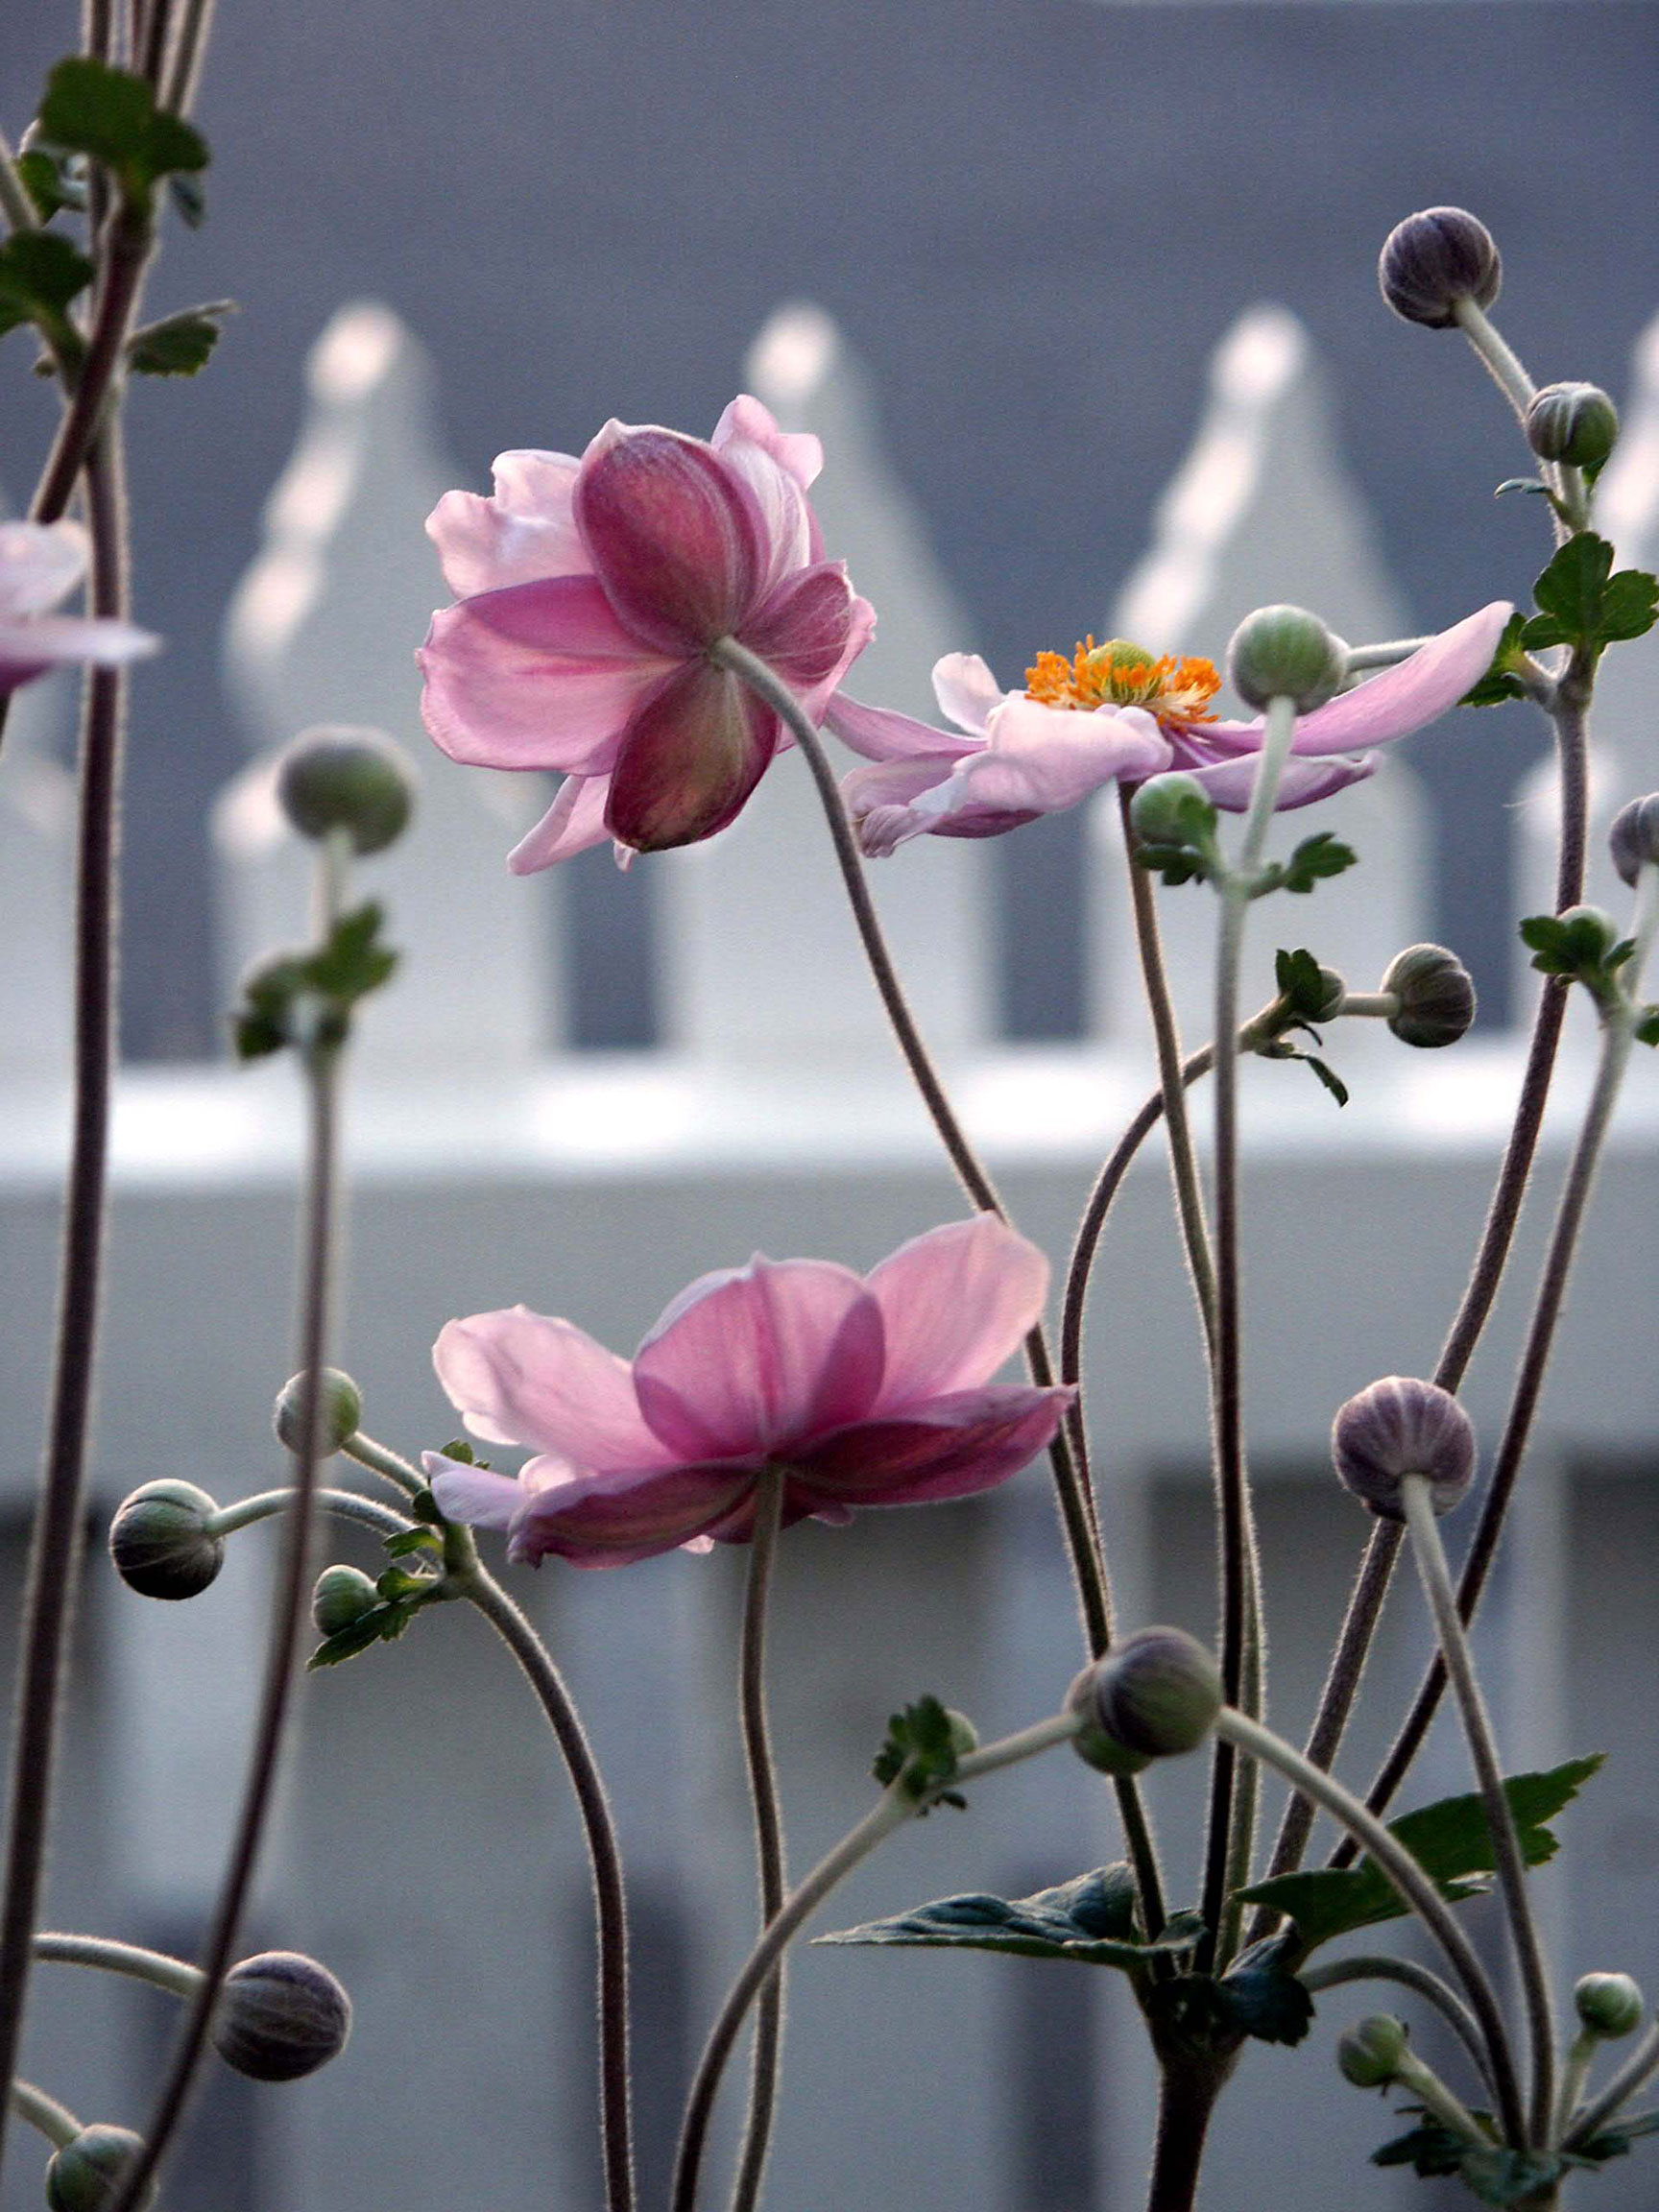 Japanese Windflowers